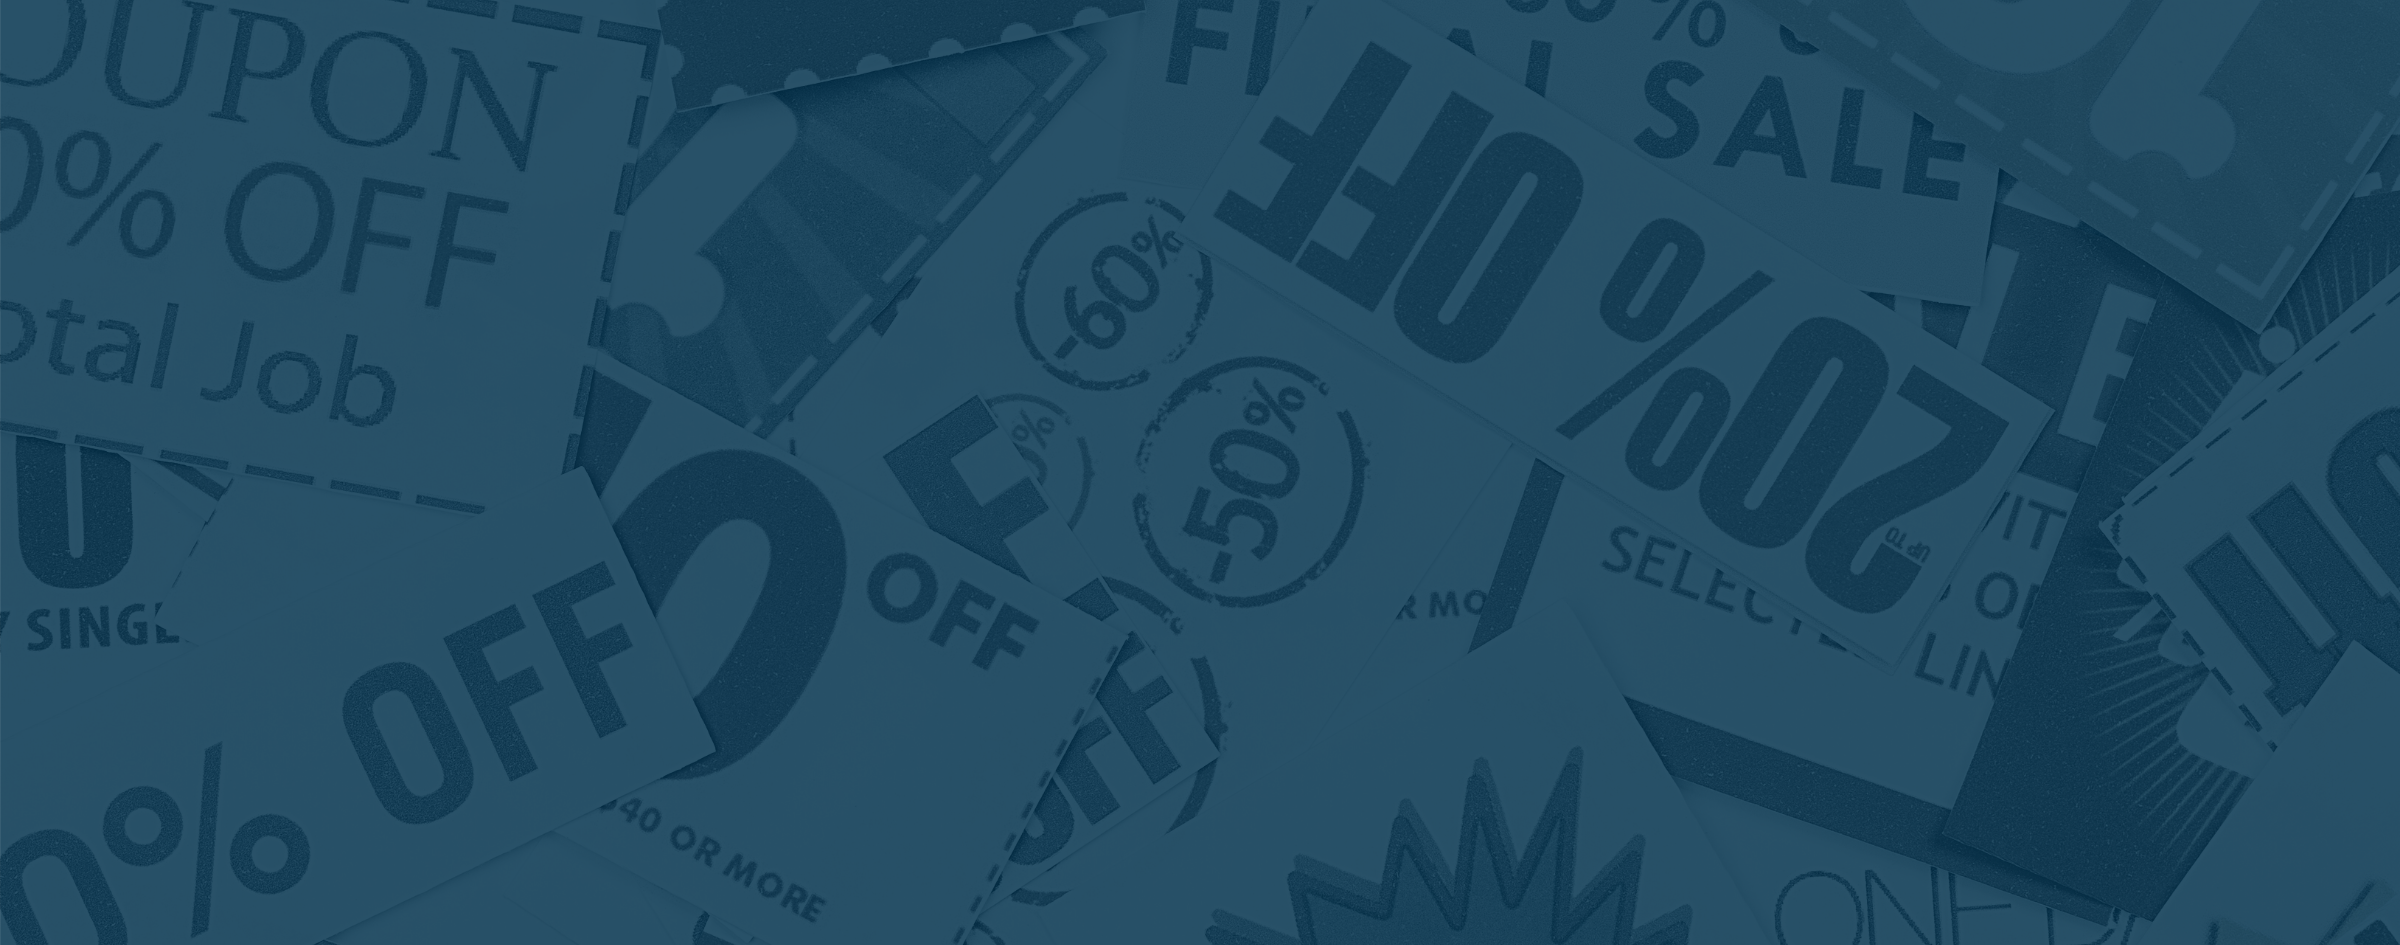 How to Implement Future-Use Coupons to Build Brand Loyalty